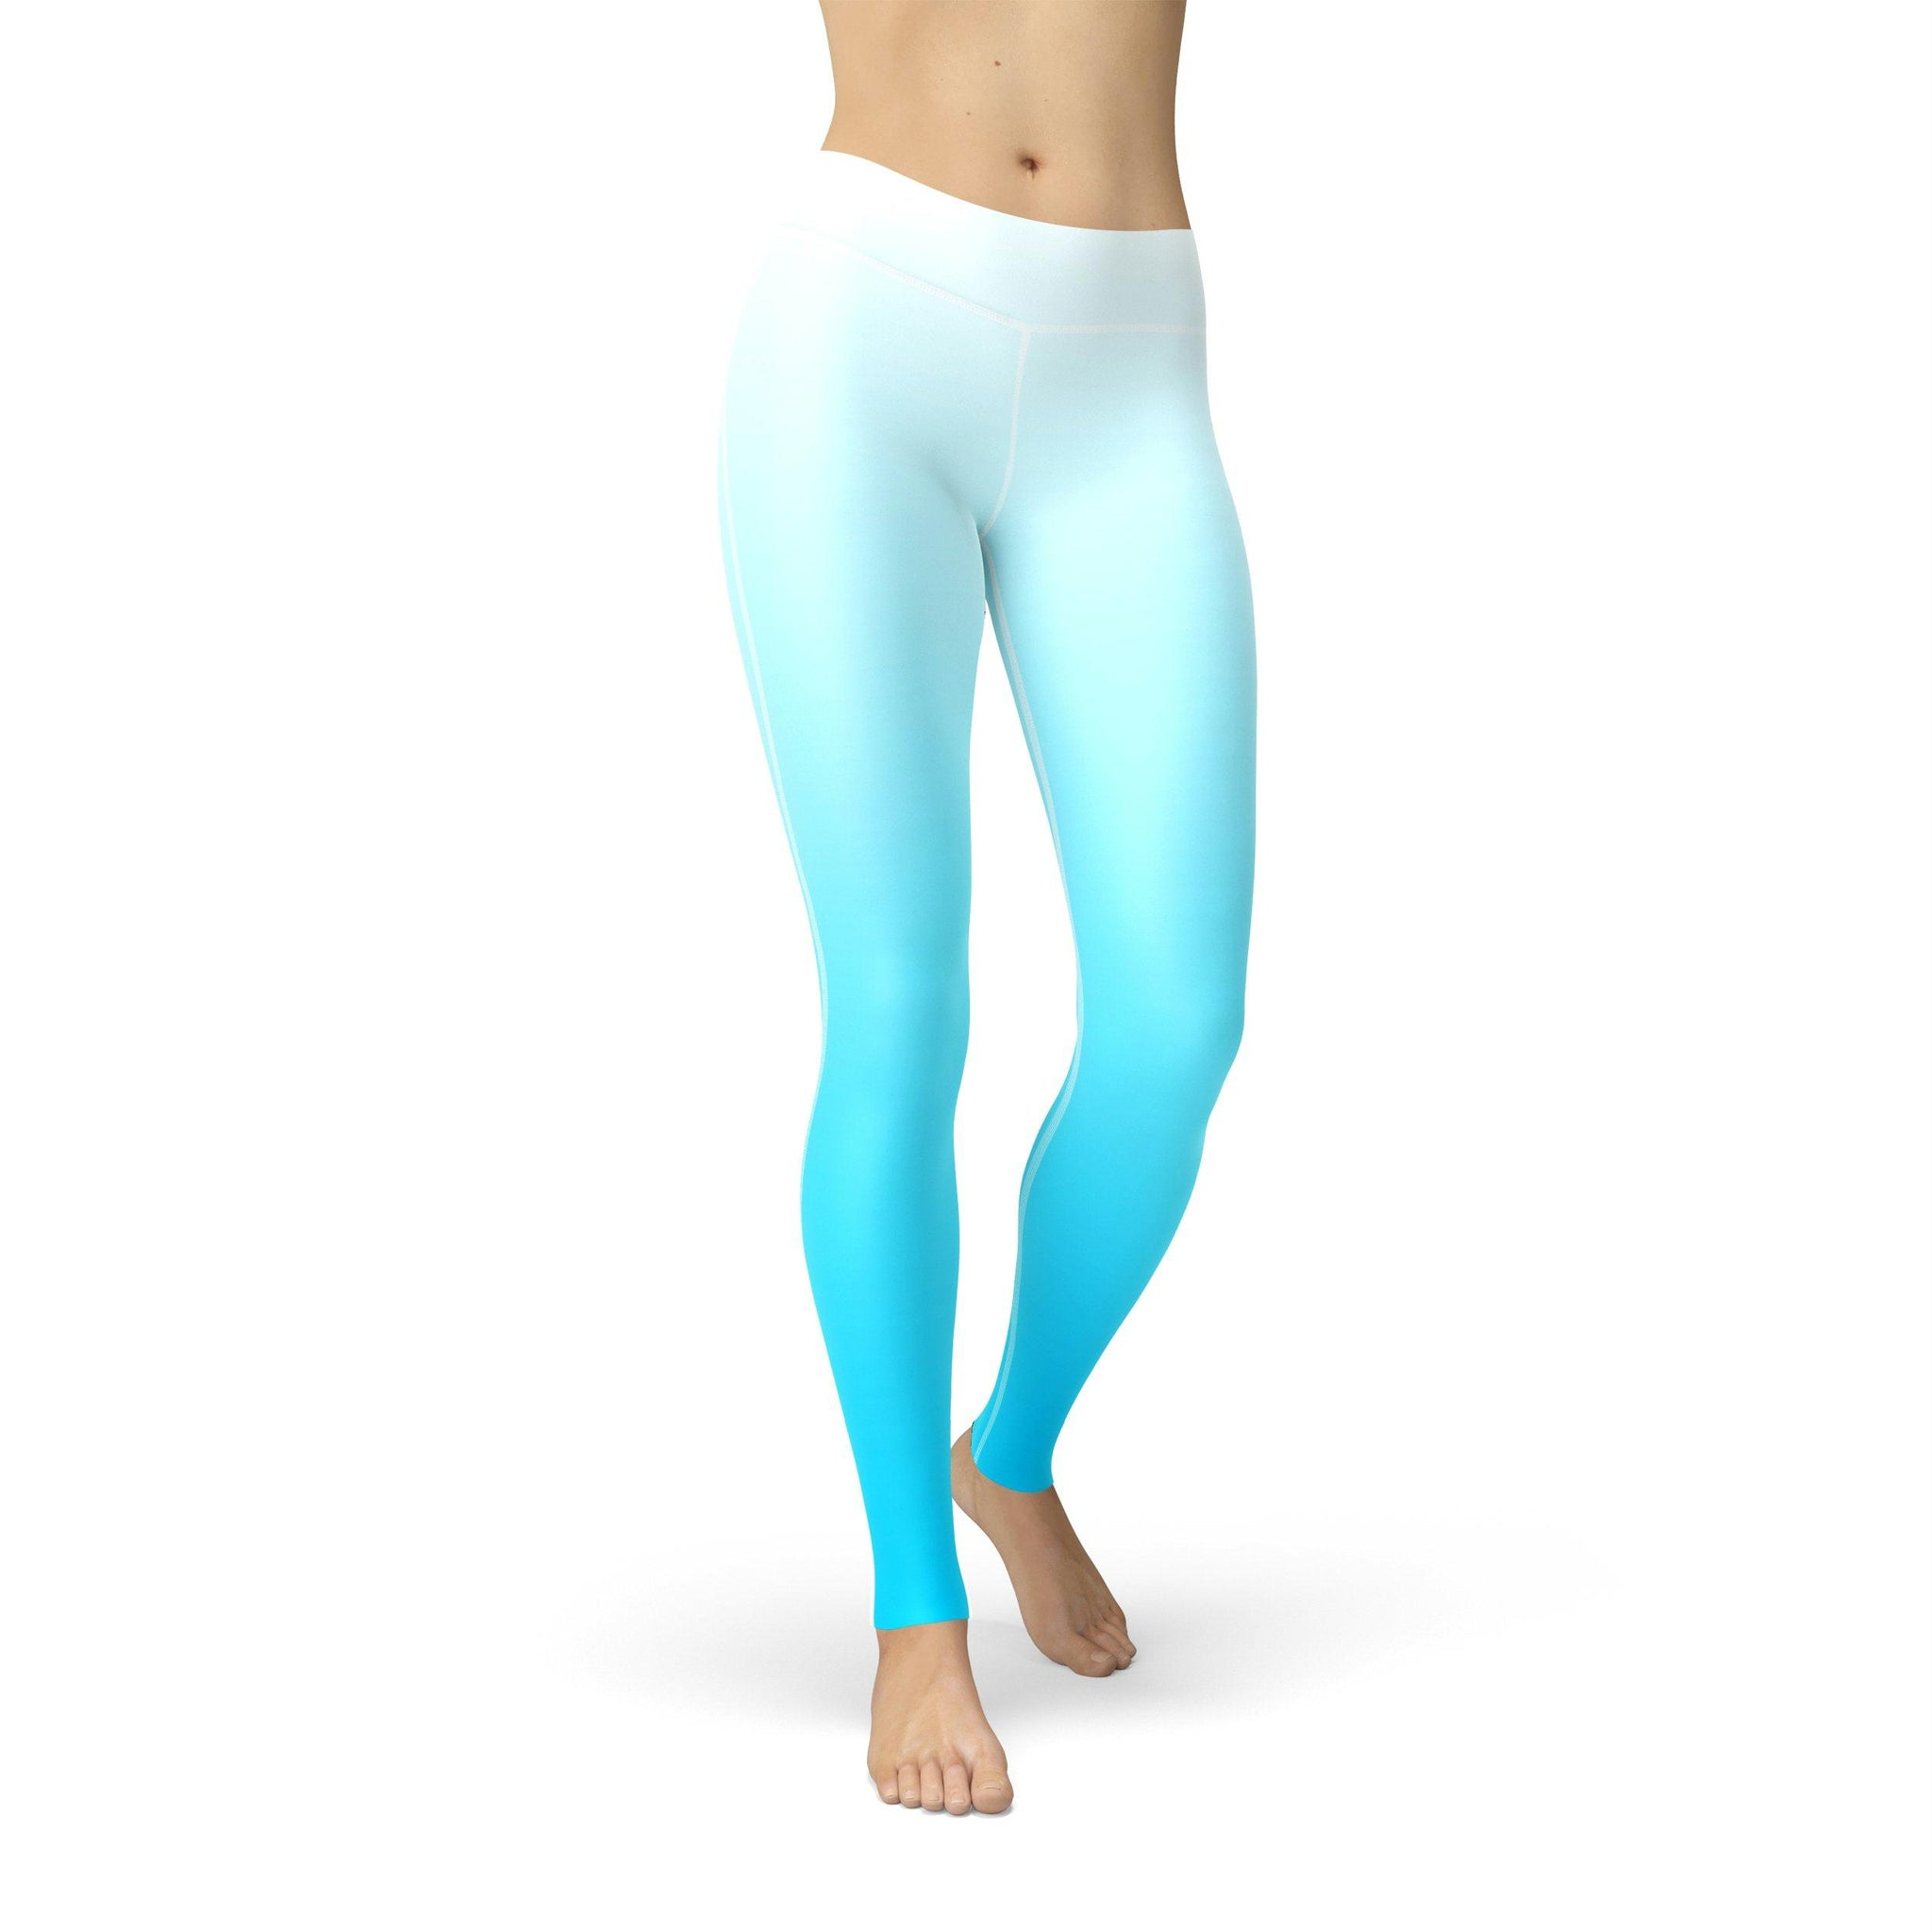 High-Waist Fusion Arctic Yoga Pants